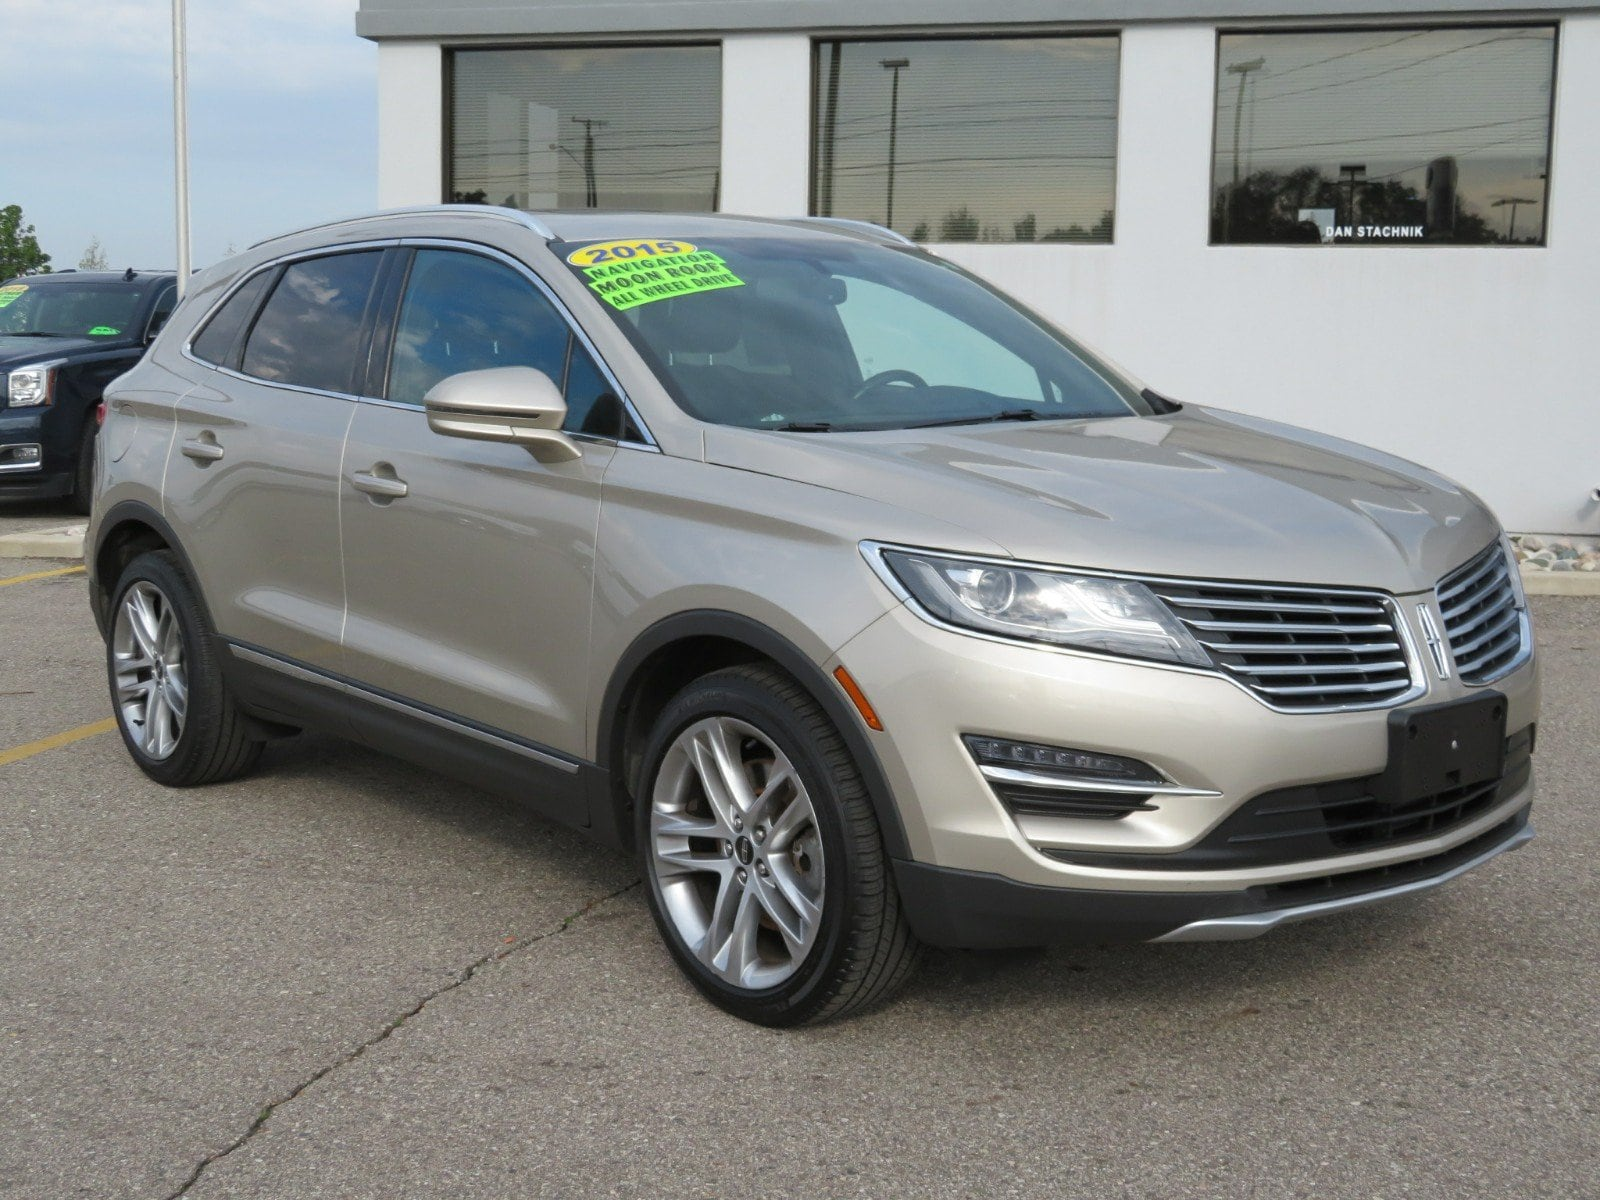 2015 Lincoln MKC RESERVE All Wheel Drive AWD